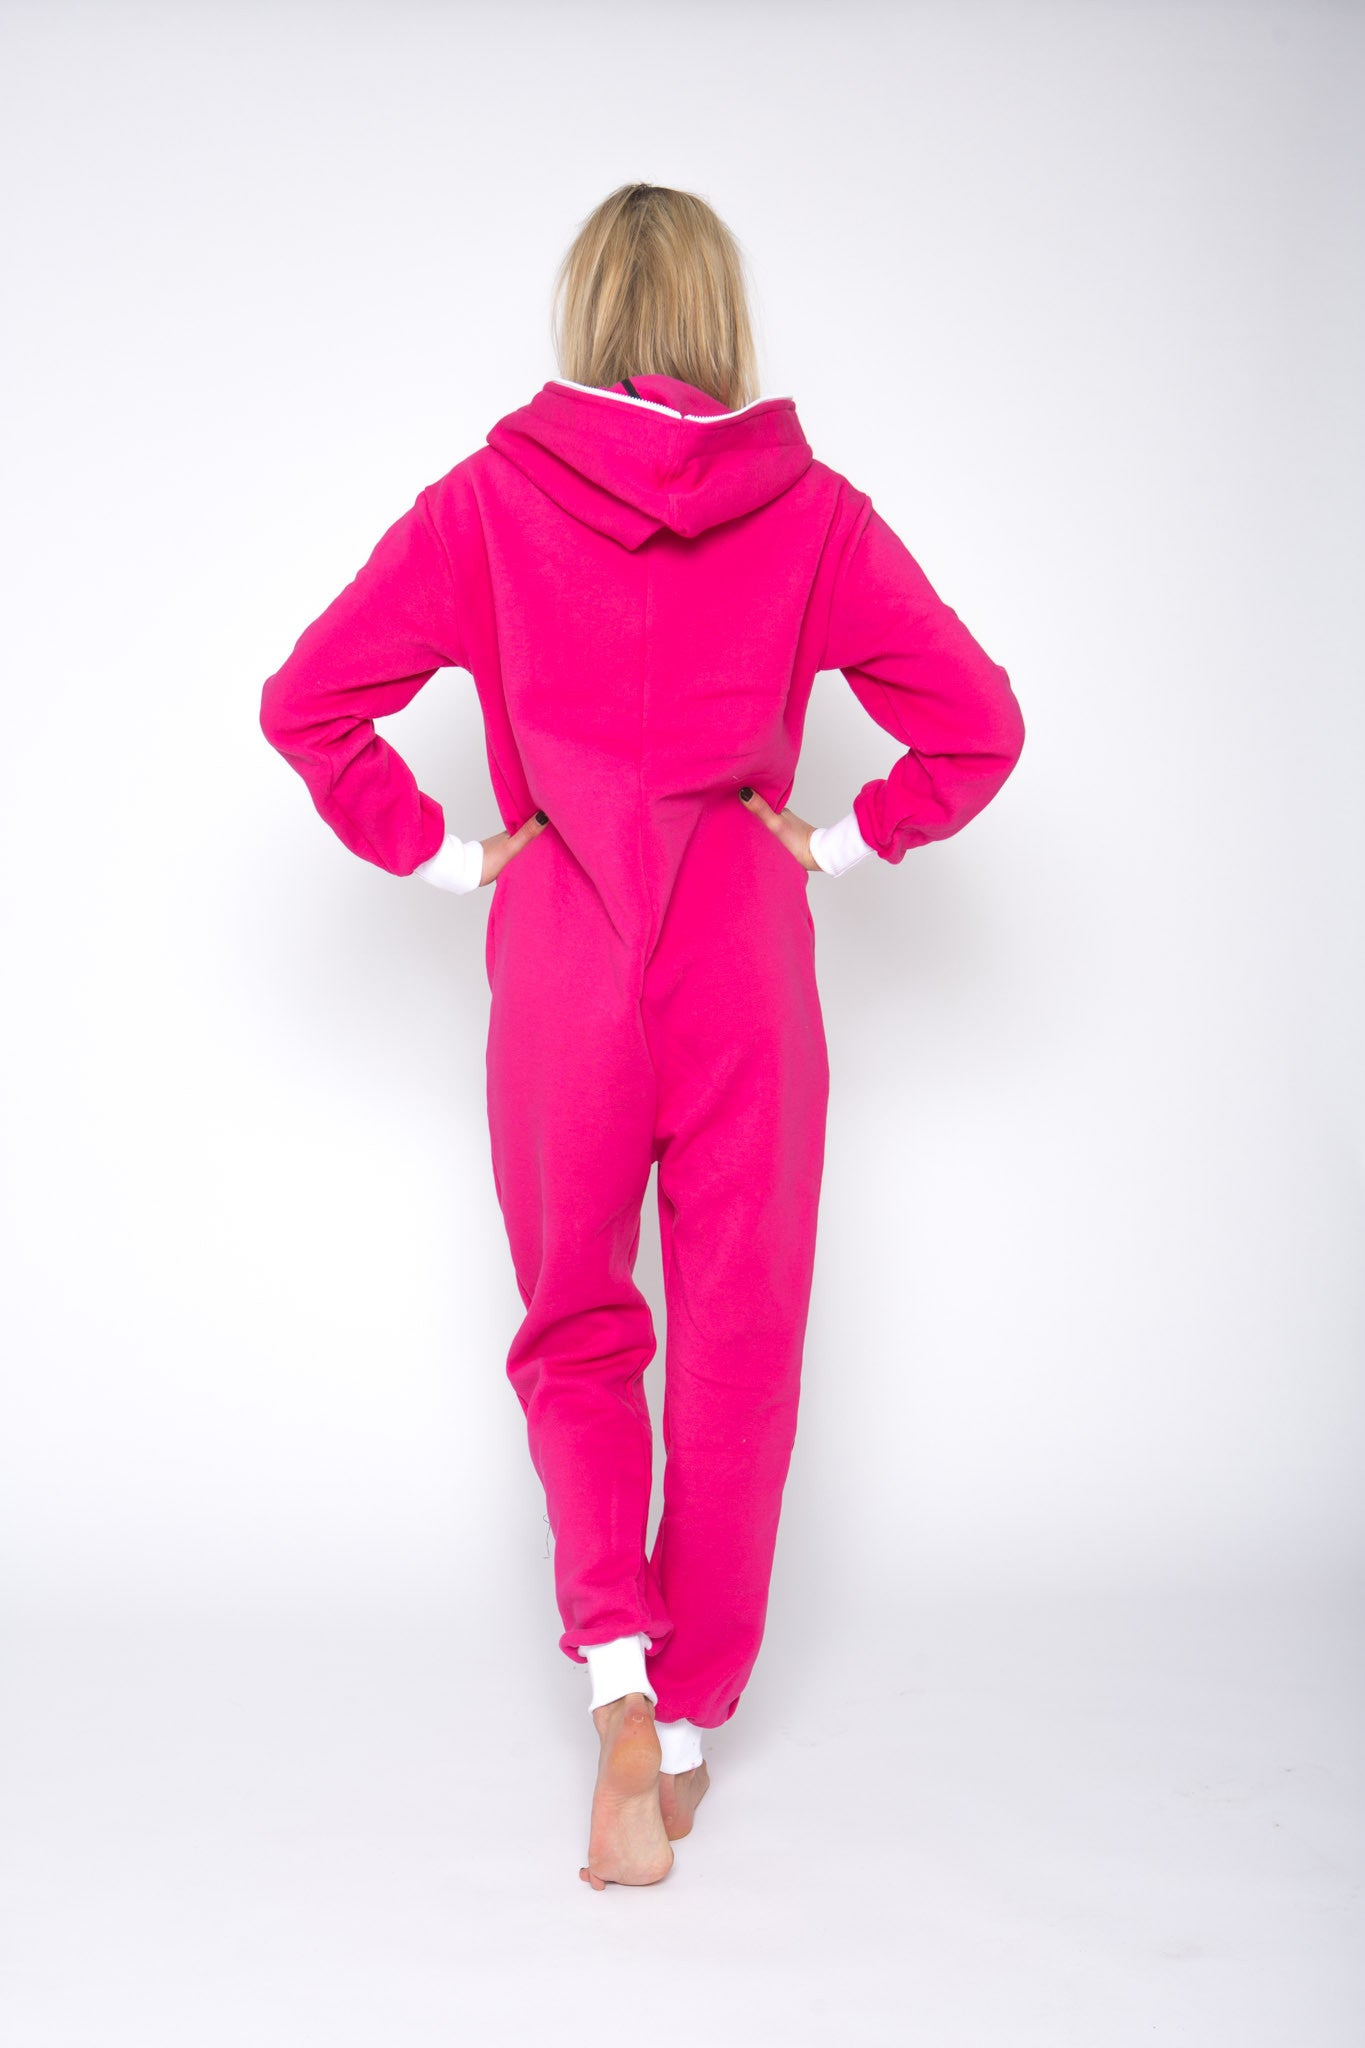 sofa killer women onesie